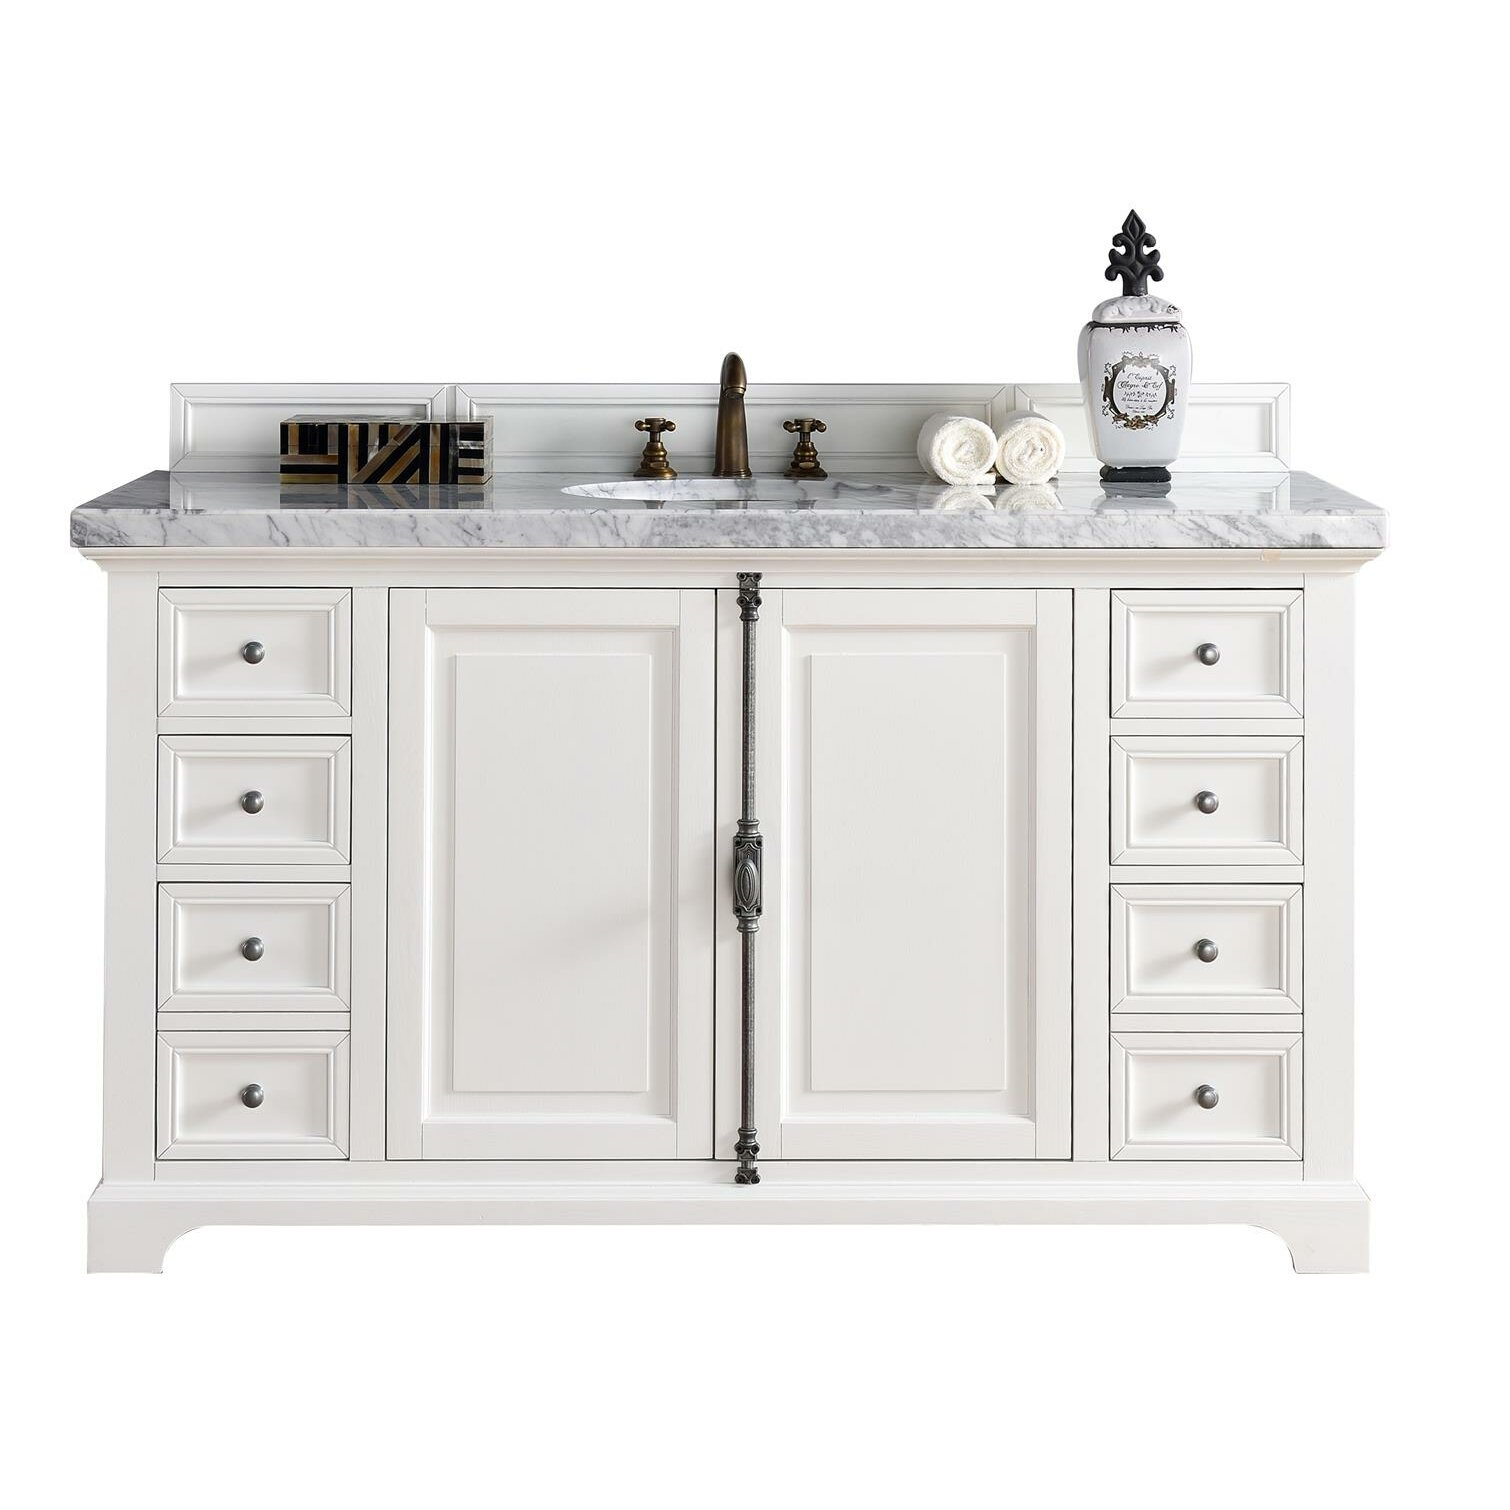 James martin furniture providence 60 single cottage white - Wayfair furniture bathroom vanities ...